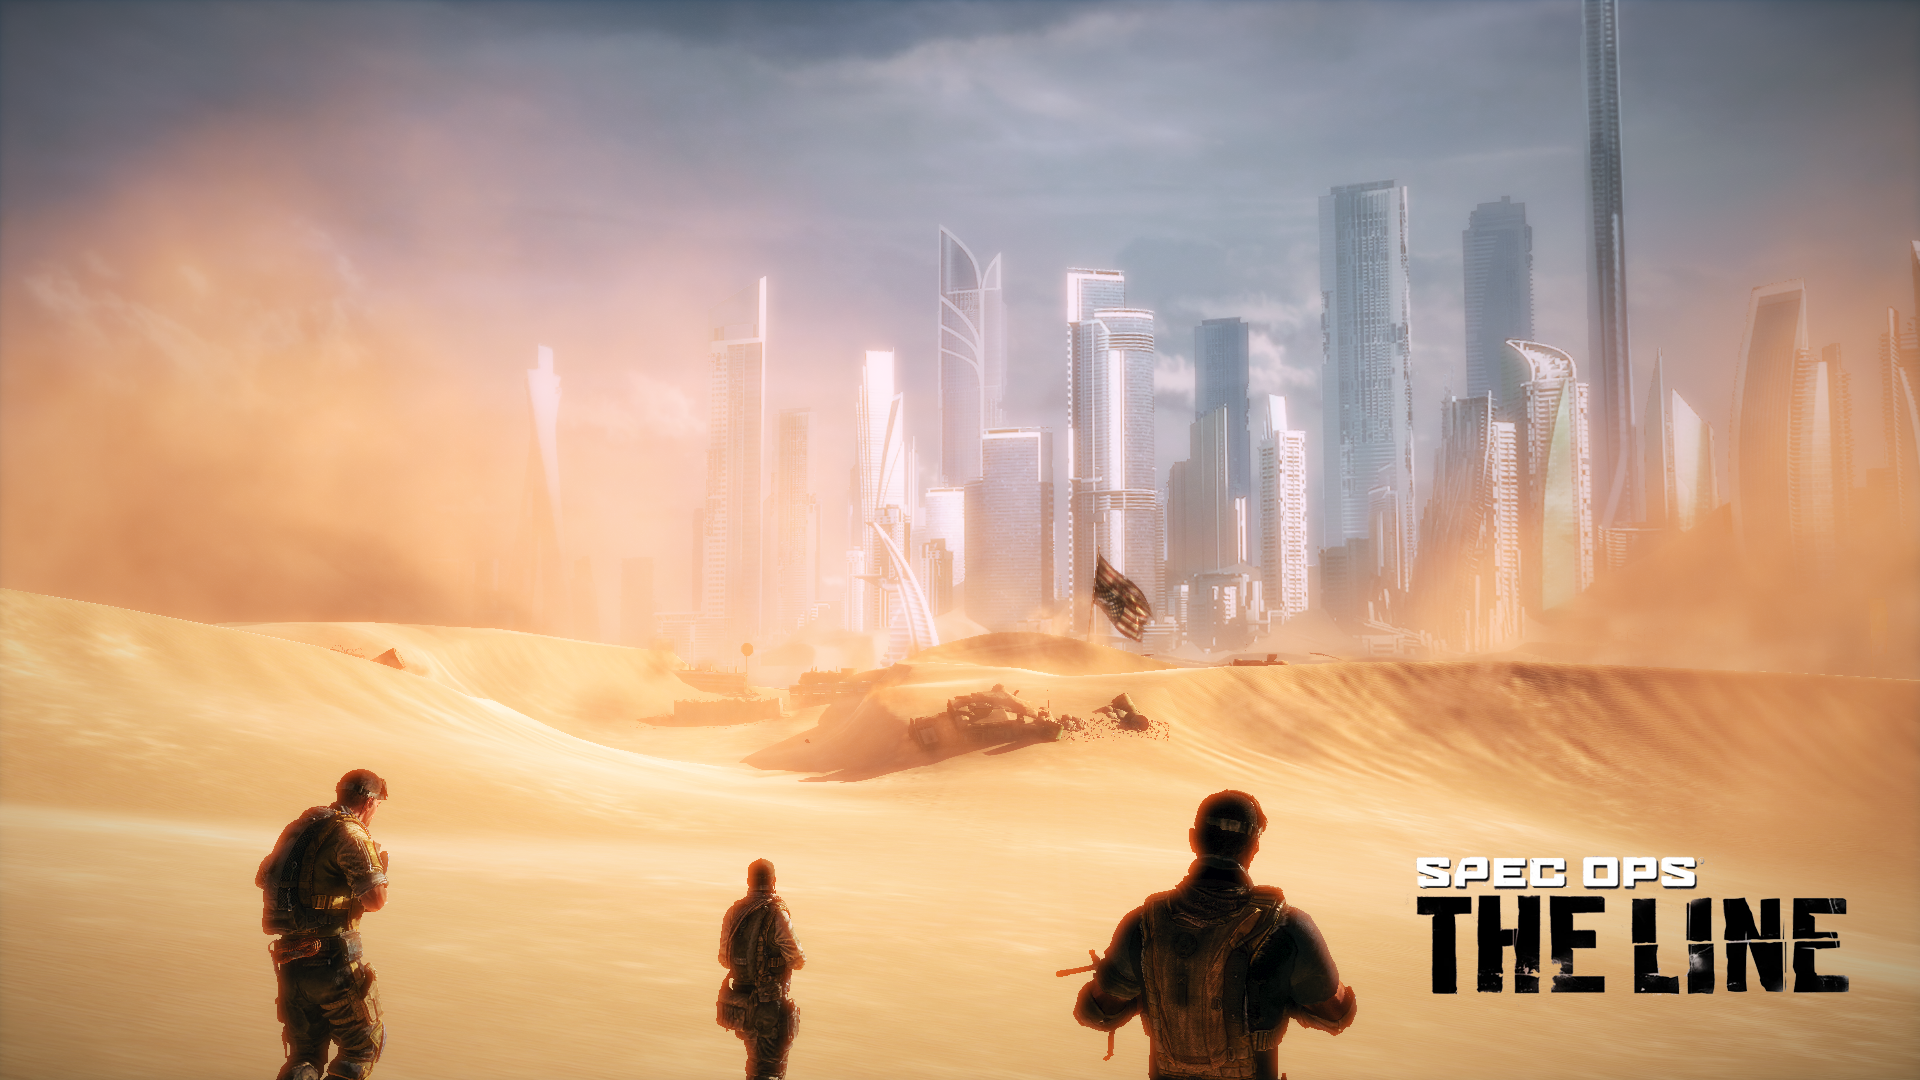 Spec Ops The Line HD Wallpaper Background Image 1920x1080 ID 1920x1080